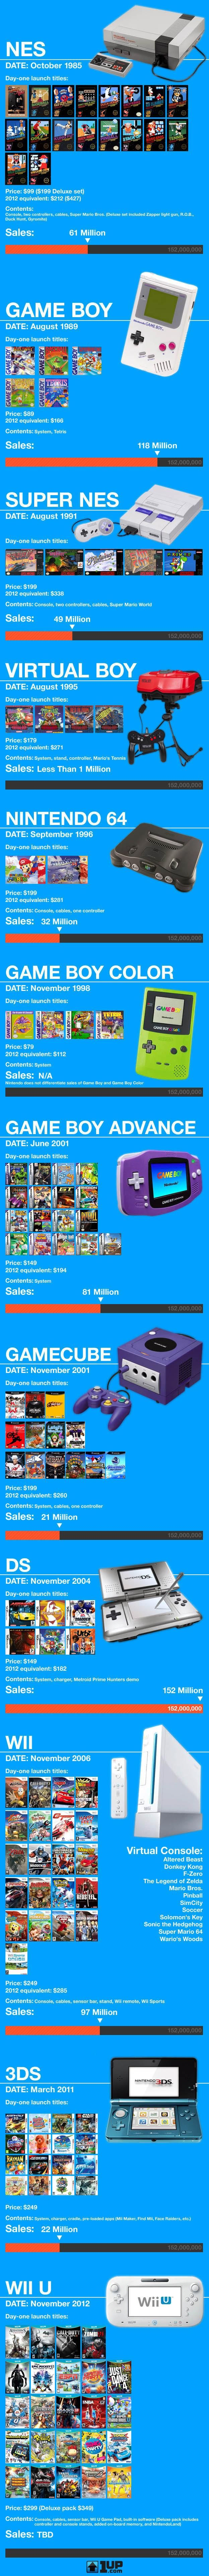 Charticle: Let's Compare Nintendo's Console Launch History